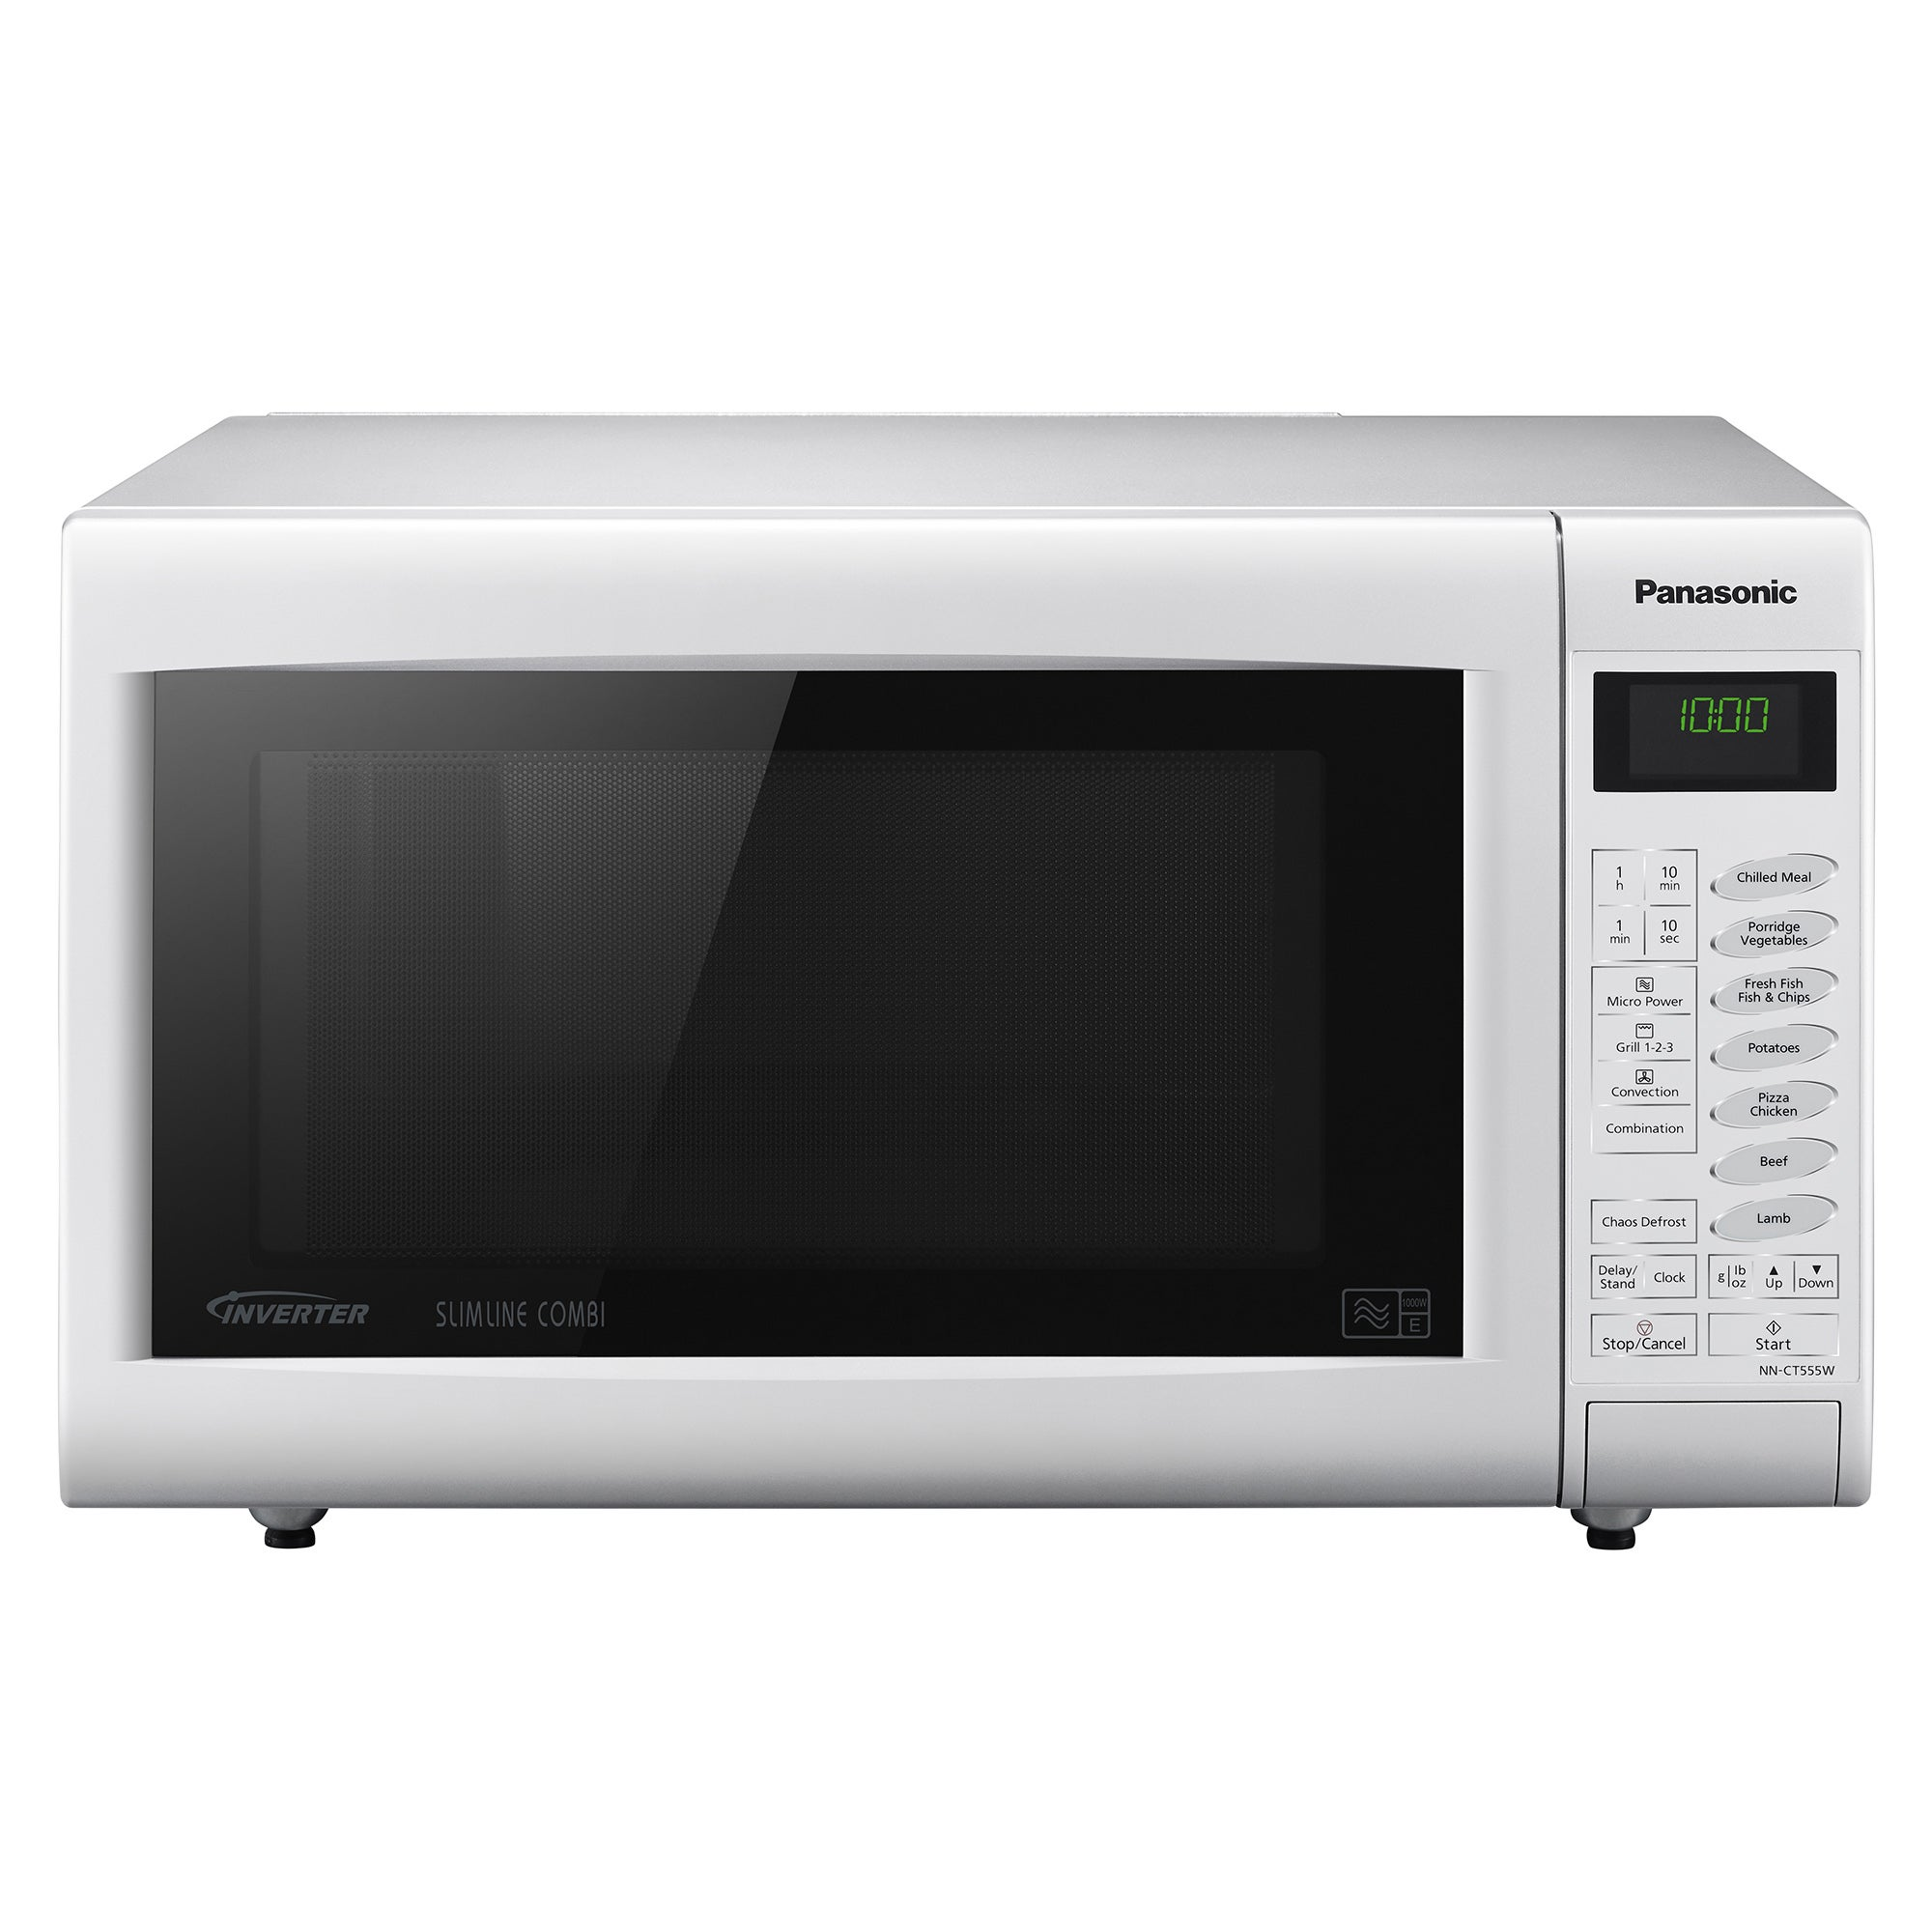 Panasonic NNCT555WBPQ 1000W White 27L 3 in 1 Combination Microwave Oven with Grill White